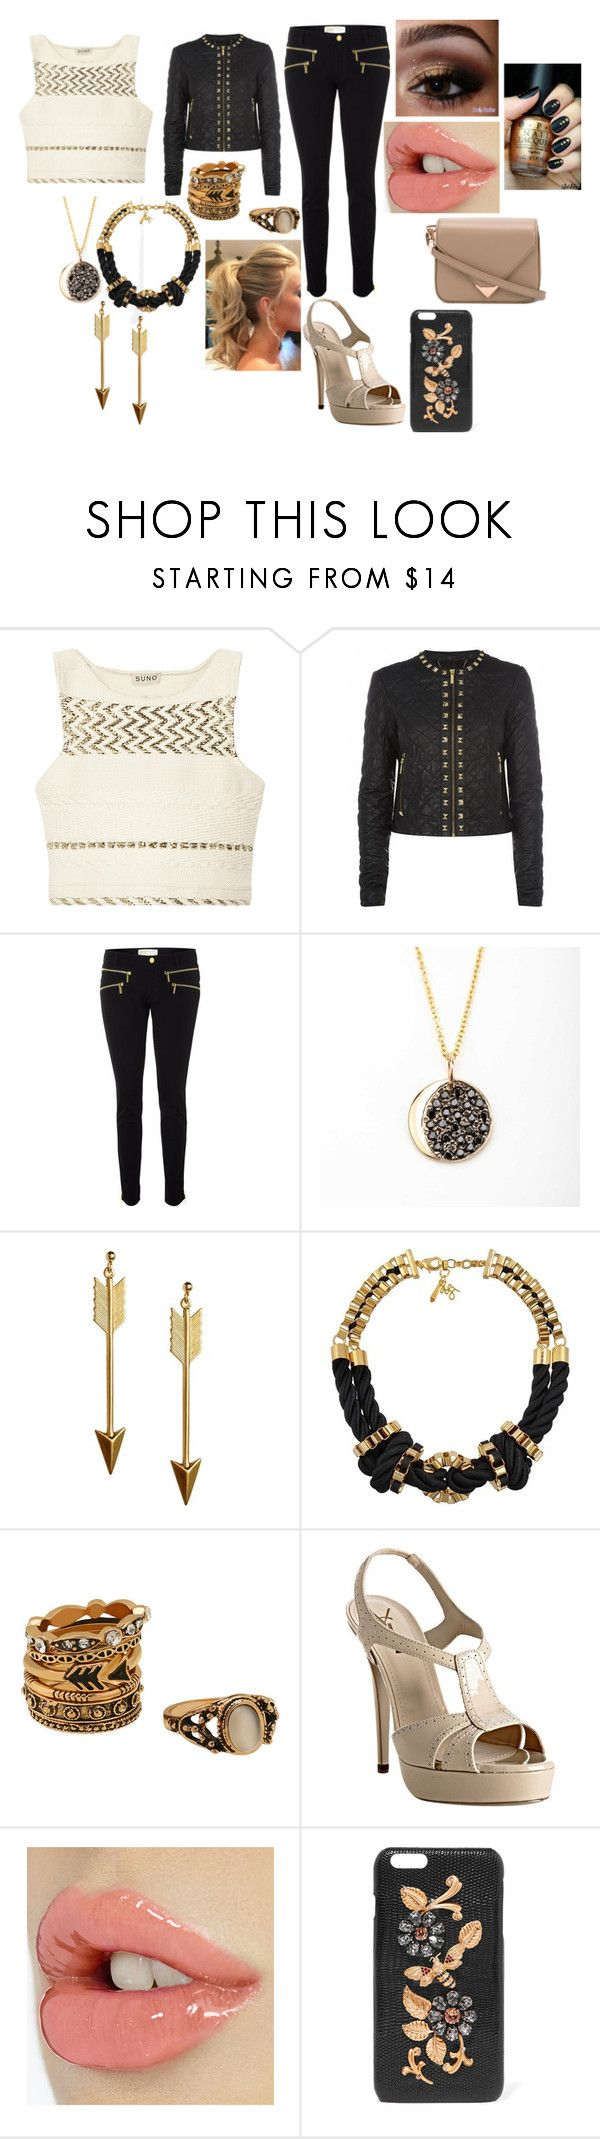 """""""Black & Gold"""" by sophie-swan ❤ liked on Polyvore featuring SUNO New York, MICHAEL Michael Kors, Michael Kors, Rock 'N Rose, John & Pearl, Yves Saint Laurent, Dolce&Gabbana and Alexander Wang"""